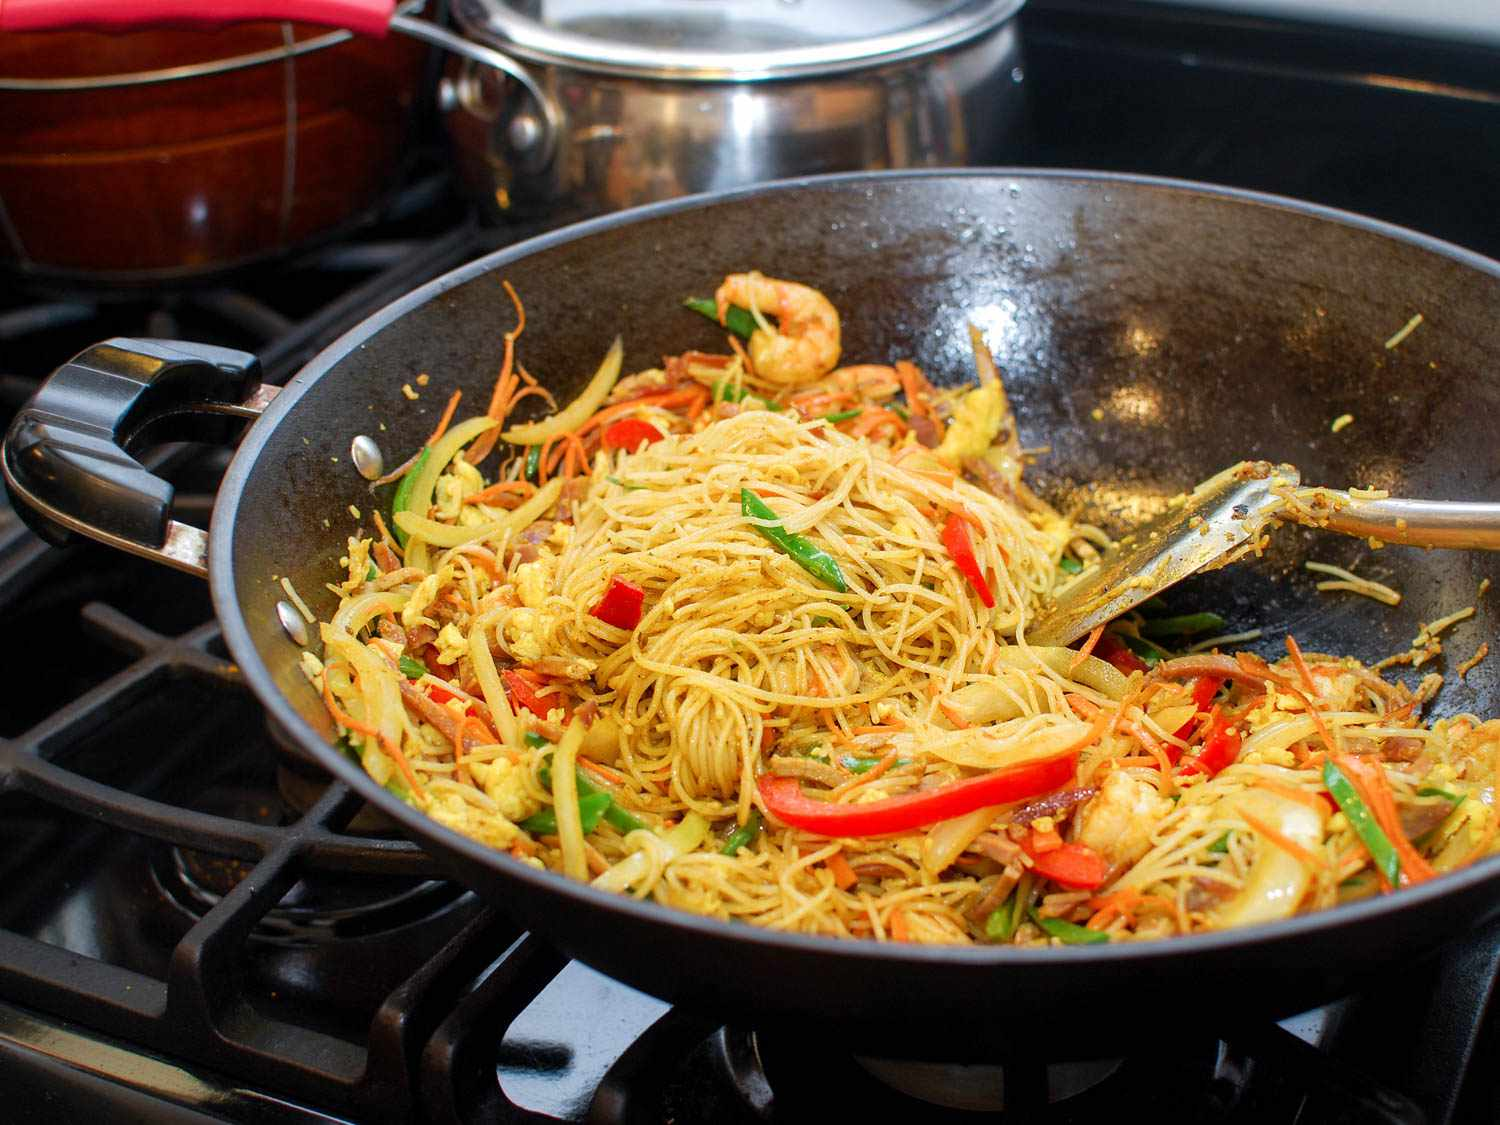 Spatula combining egg, meat, vegetables, and curried vermicelli noodles in a hot wok.